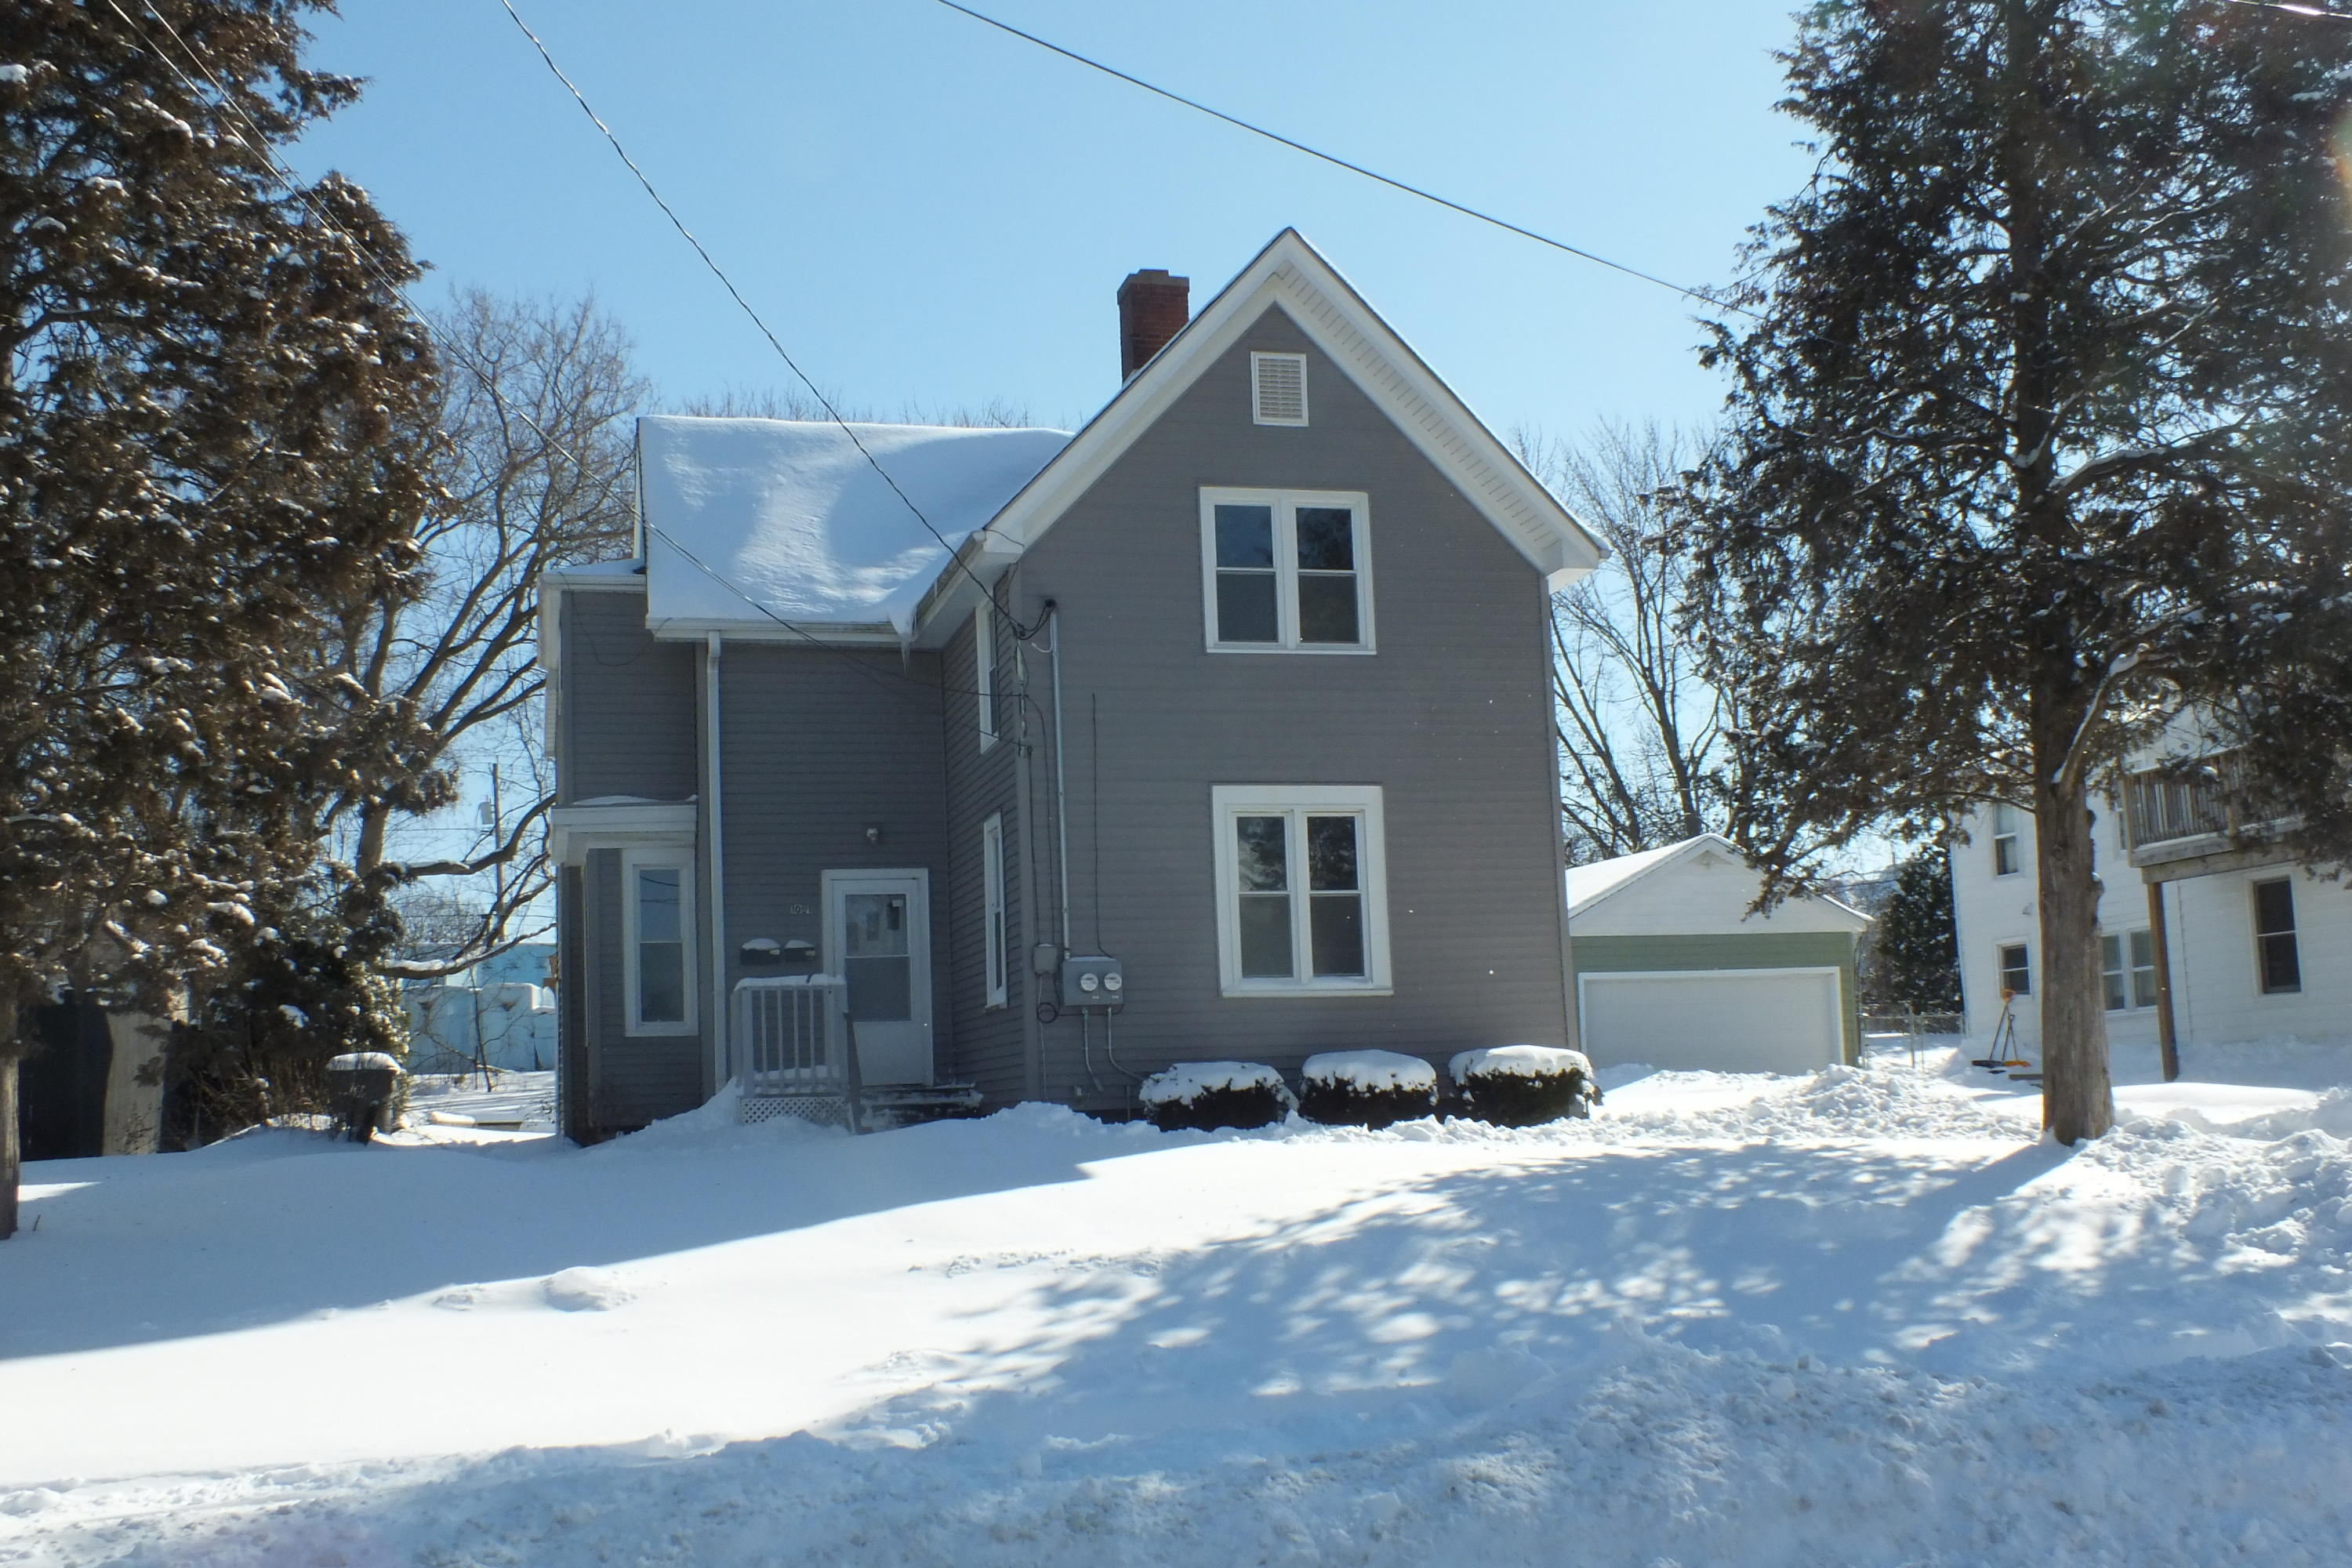 1091 Baxter St, Waukesha, Wisconsin 53186, 2 Bedrooms Bedrooms, 4 Rooms Rooms,1 BathroomBathrooms,Two-Family,For Sale,Baxter St,1,1622708